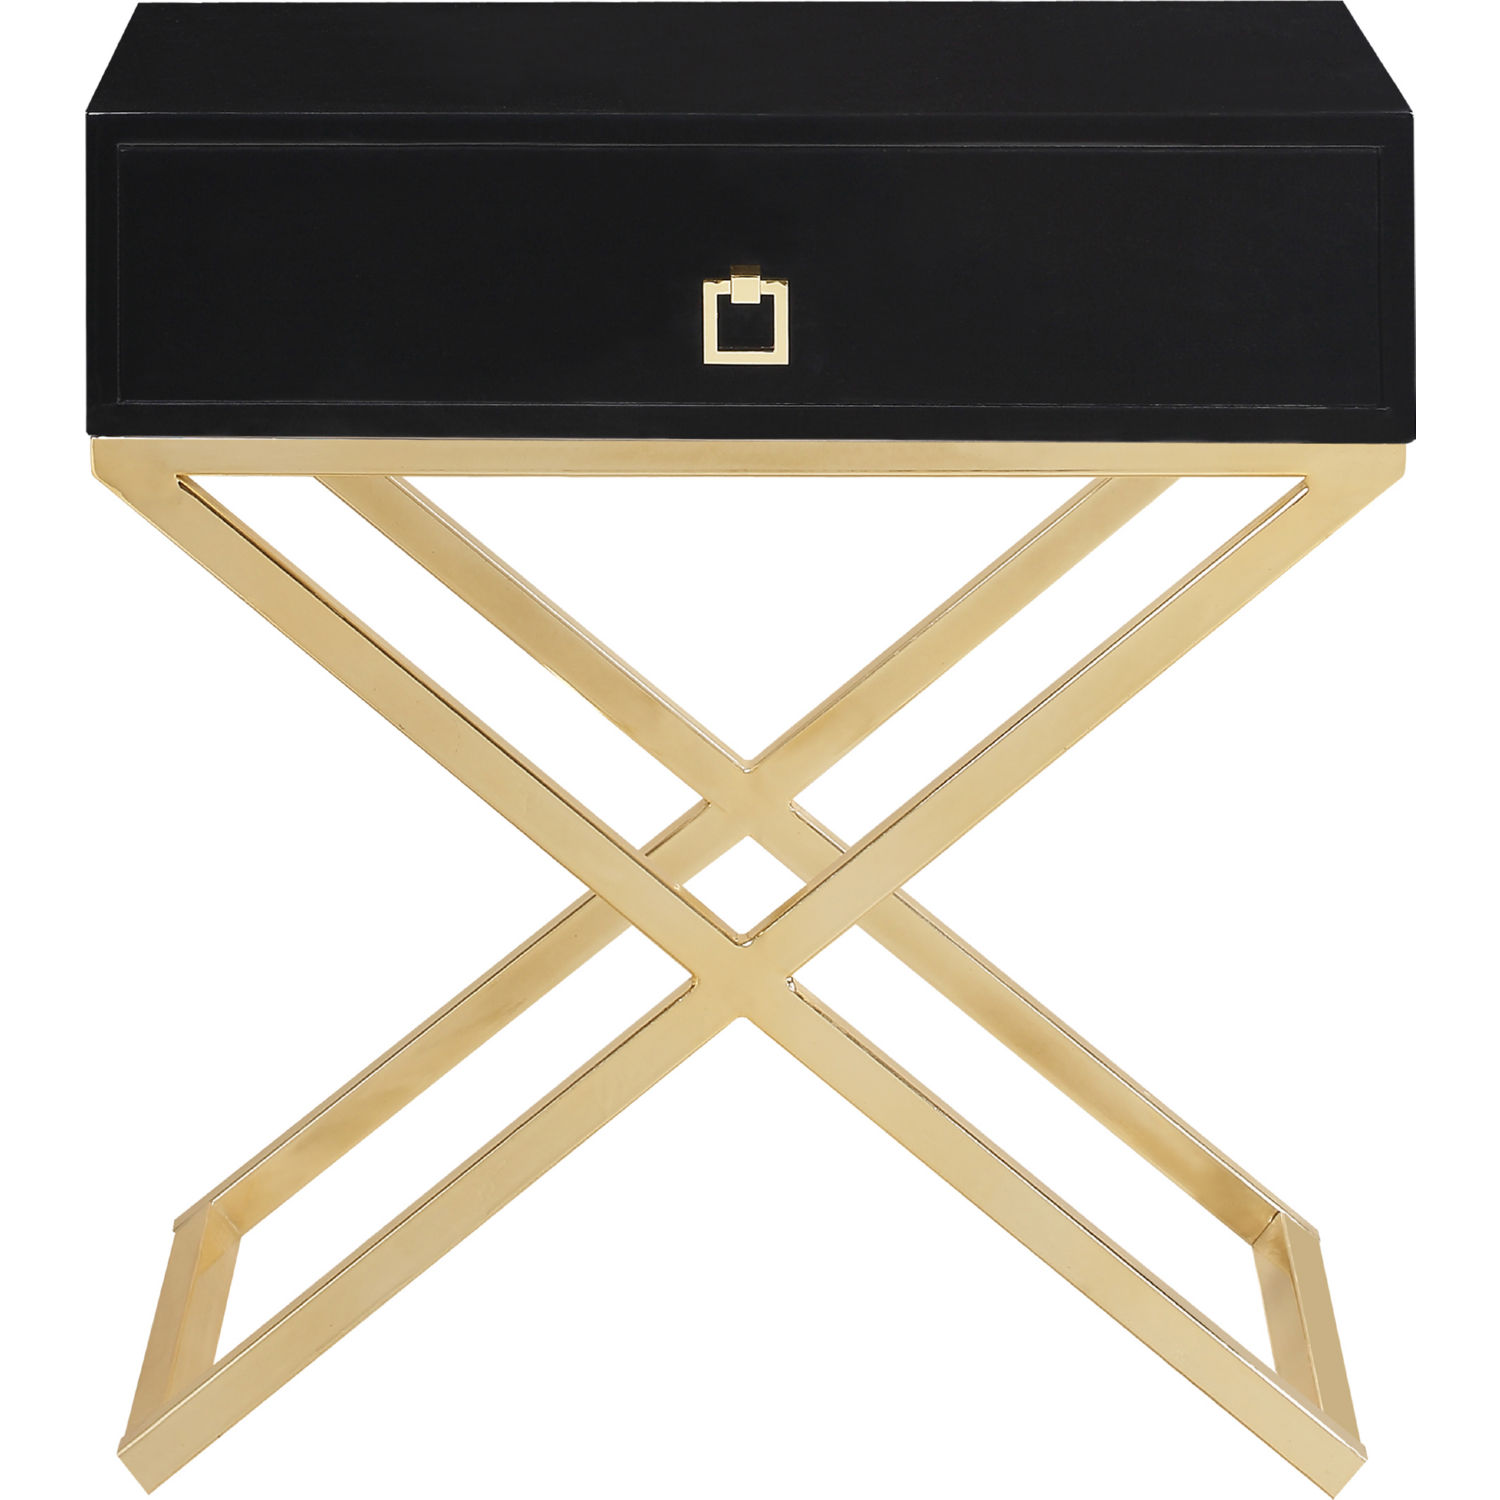 Ithaca Side Table In High Gloss Black Lacquer On Brass Stainless By Chic Home